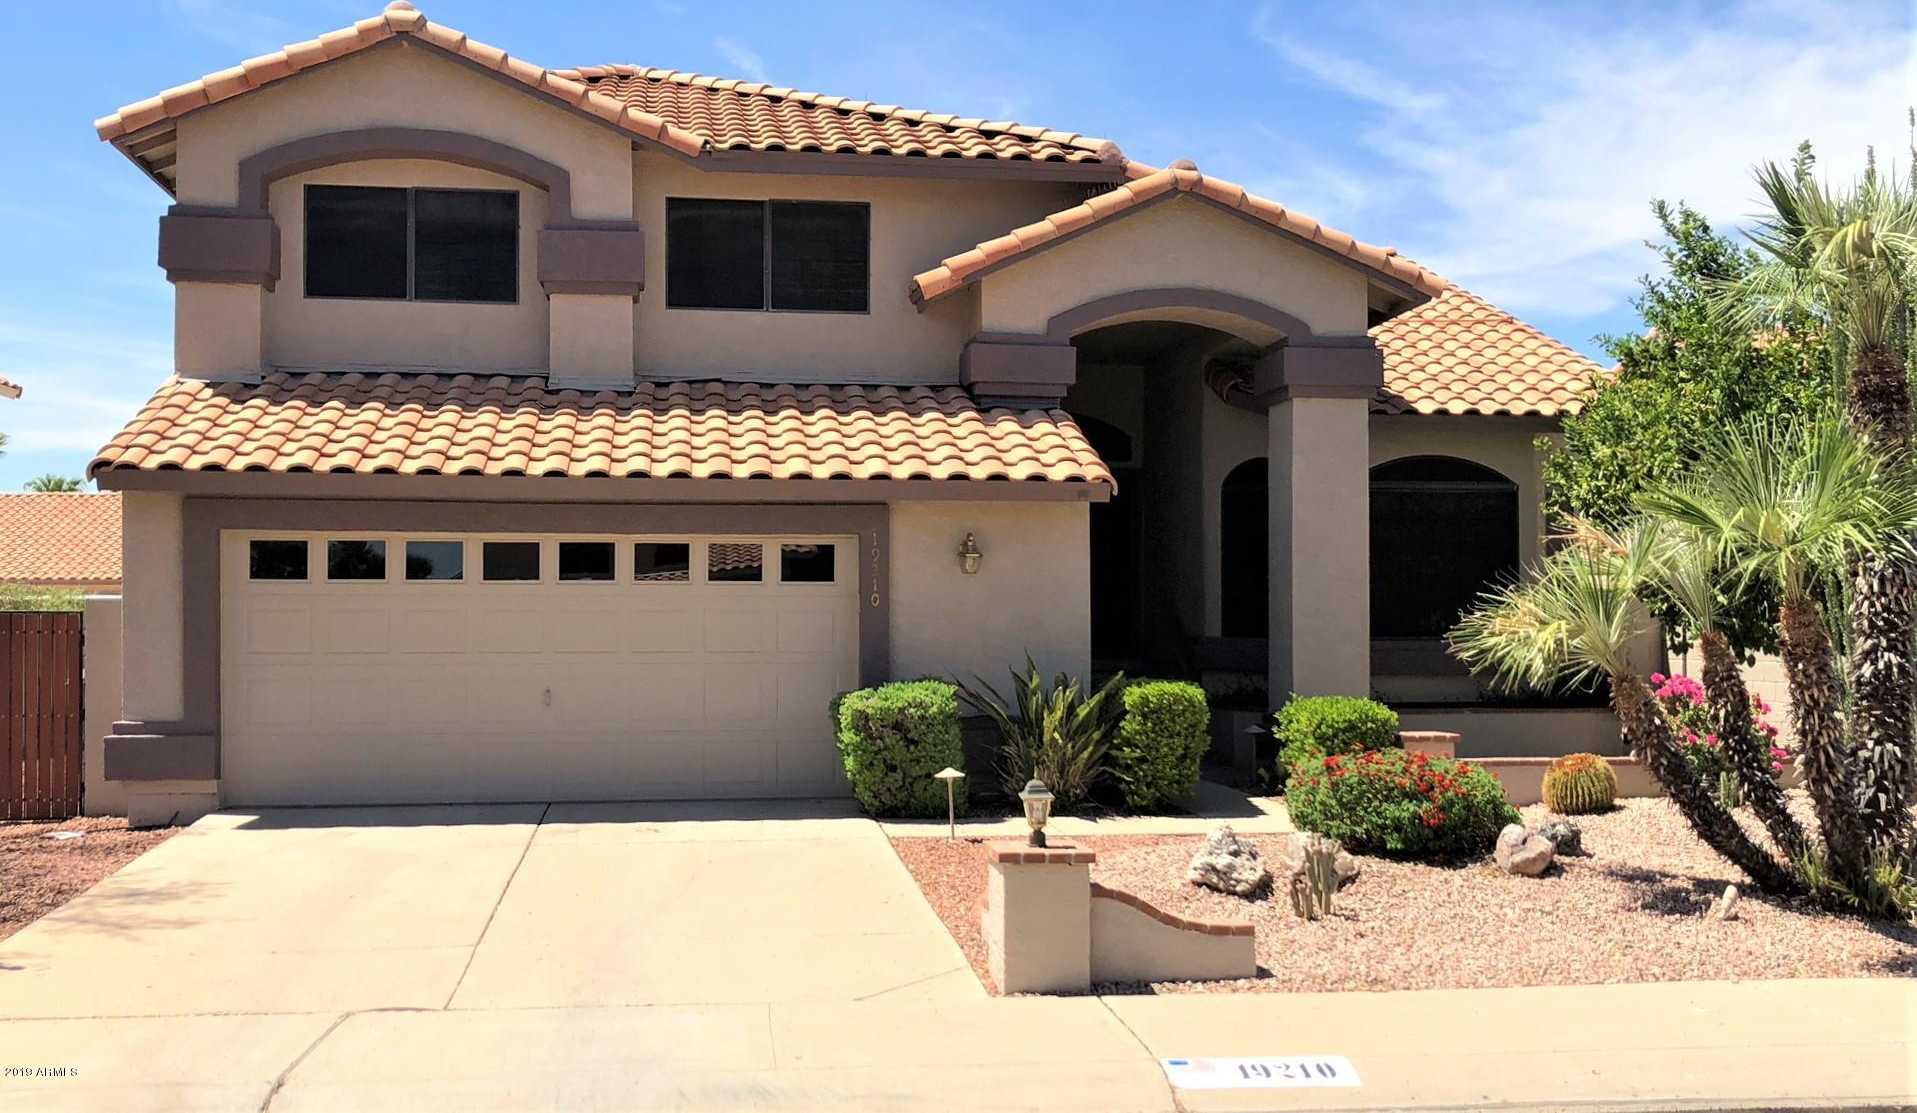 $398,000 - 5Br/3Ba - Home for Sale in Arrowhead Ranch 5 Lot 1-164, Glendale